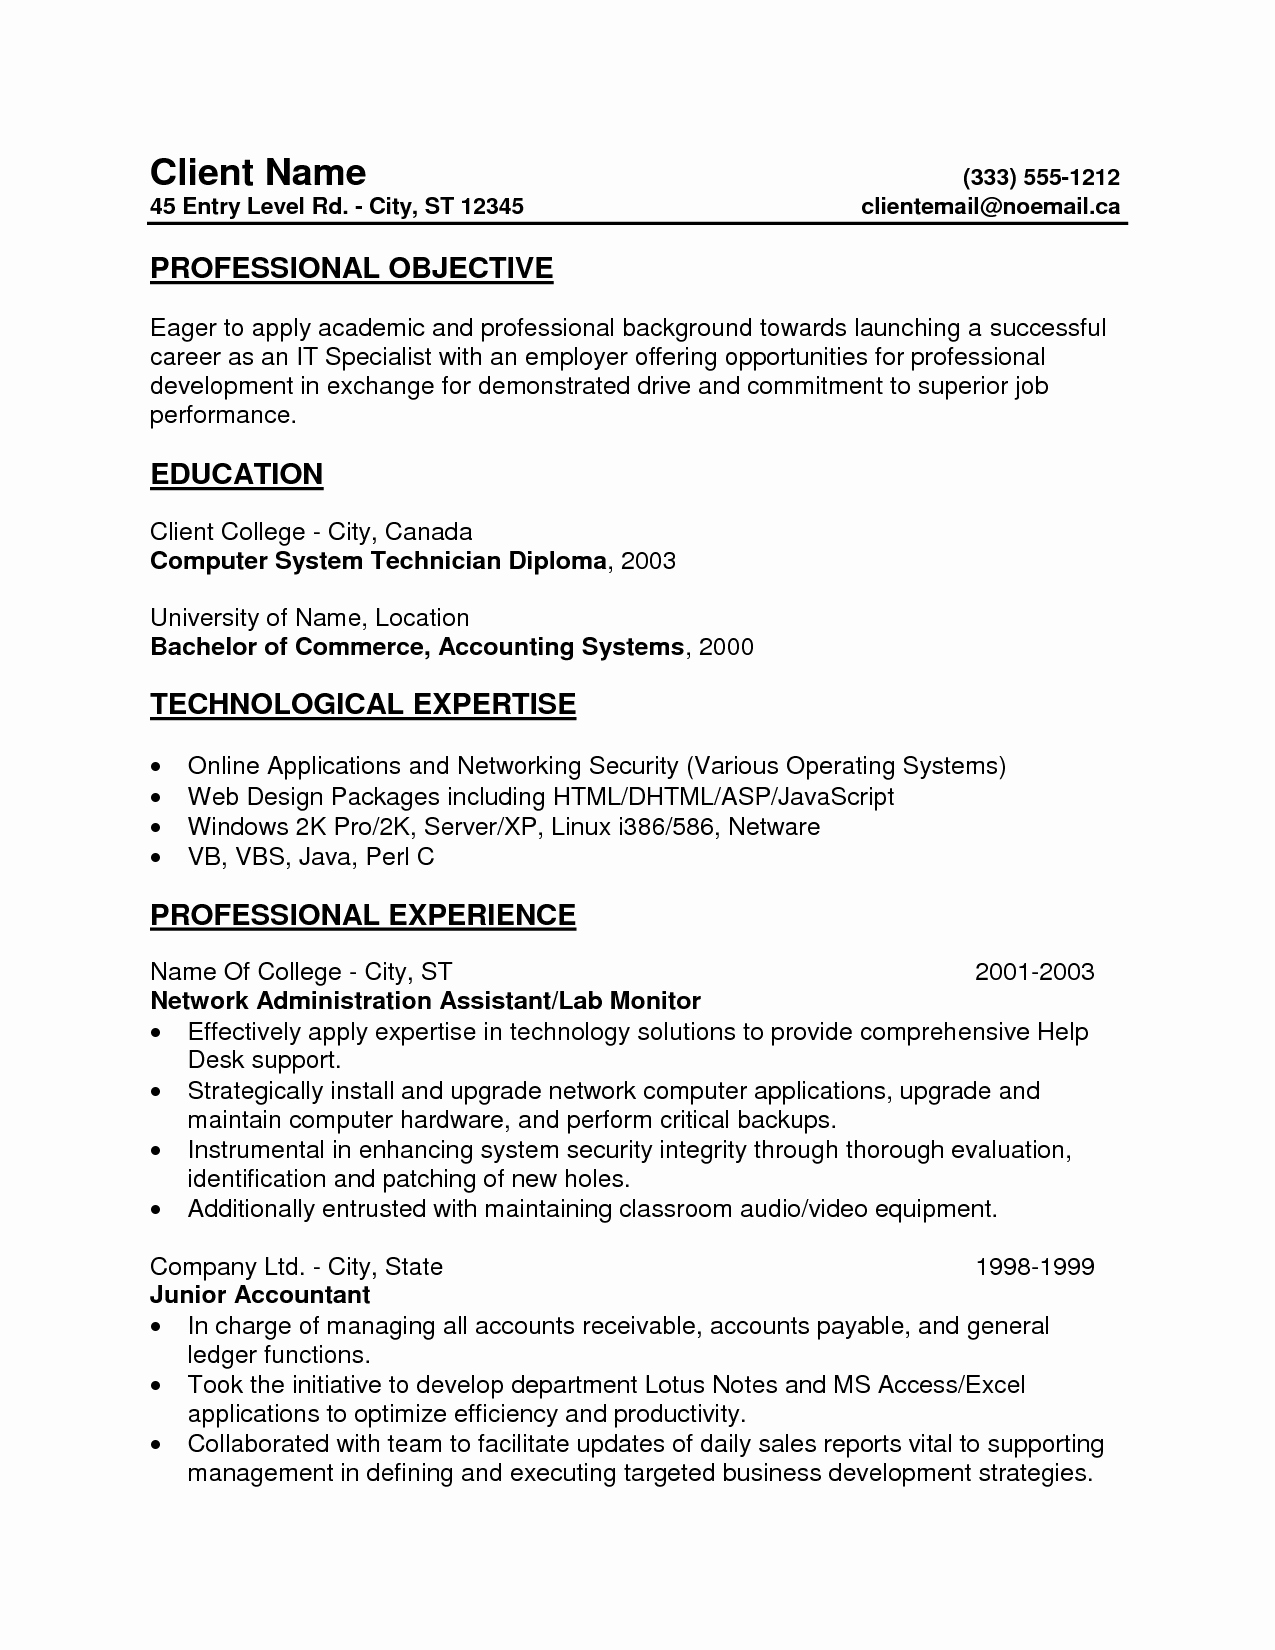 Resume for Entry Level Position Awesome Free Entry Level Resumes Samplebusinessresume